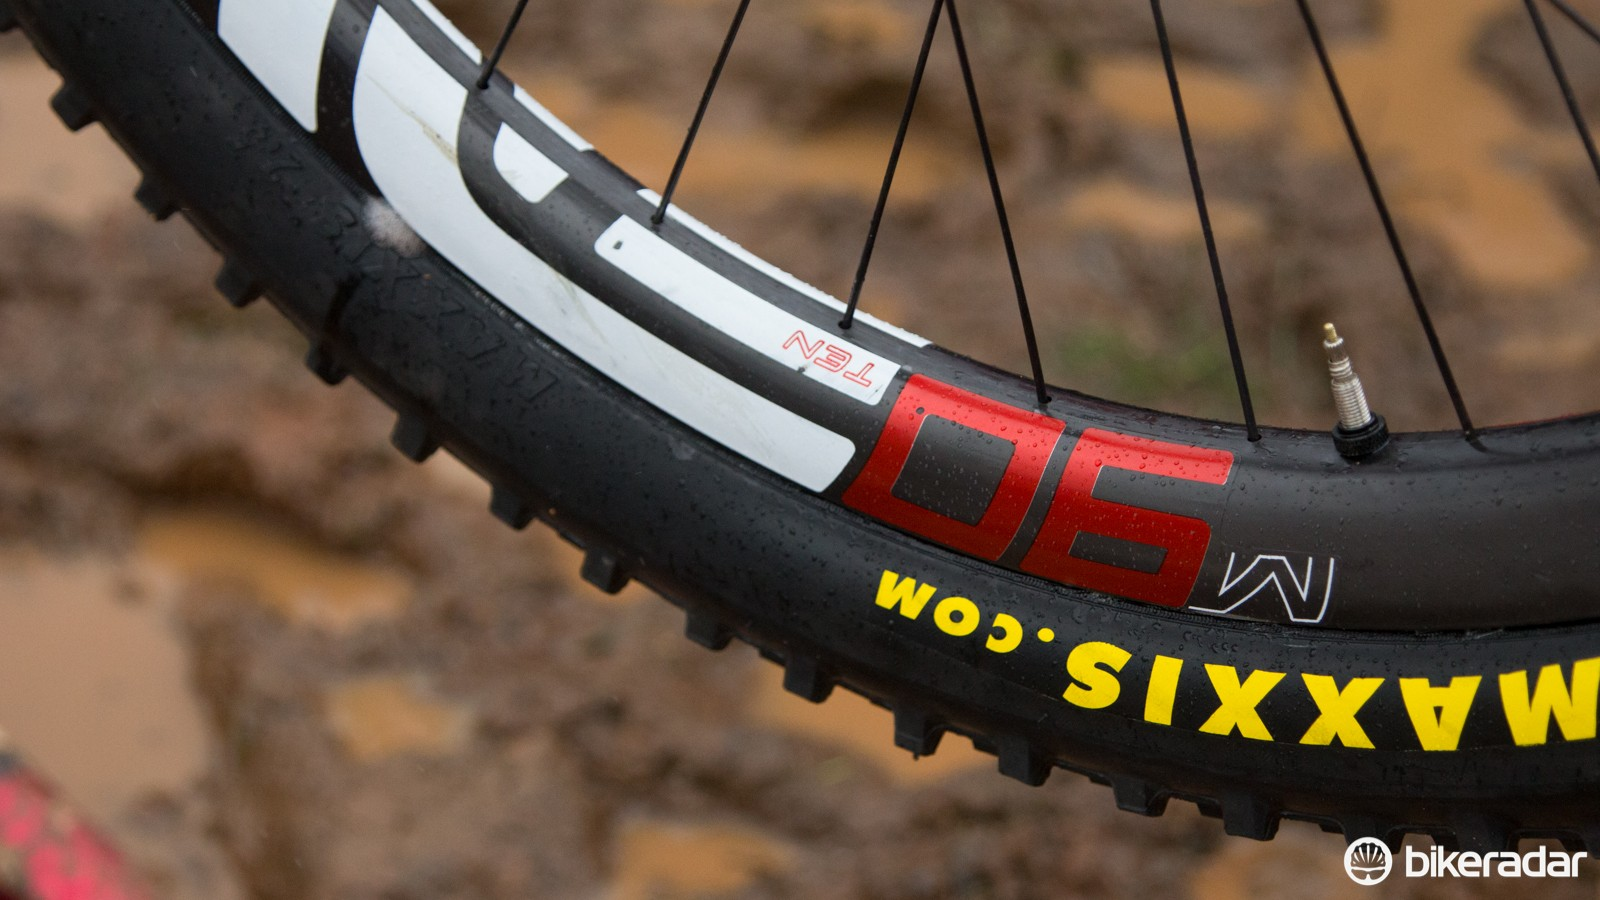 The Syndicate team were rolling on these new Enve M90-Ten rims